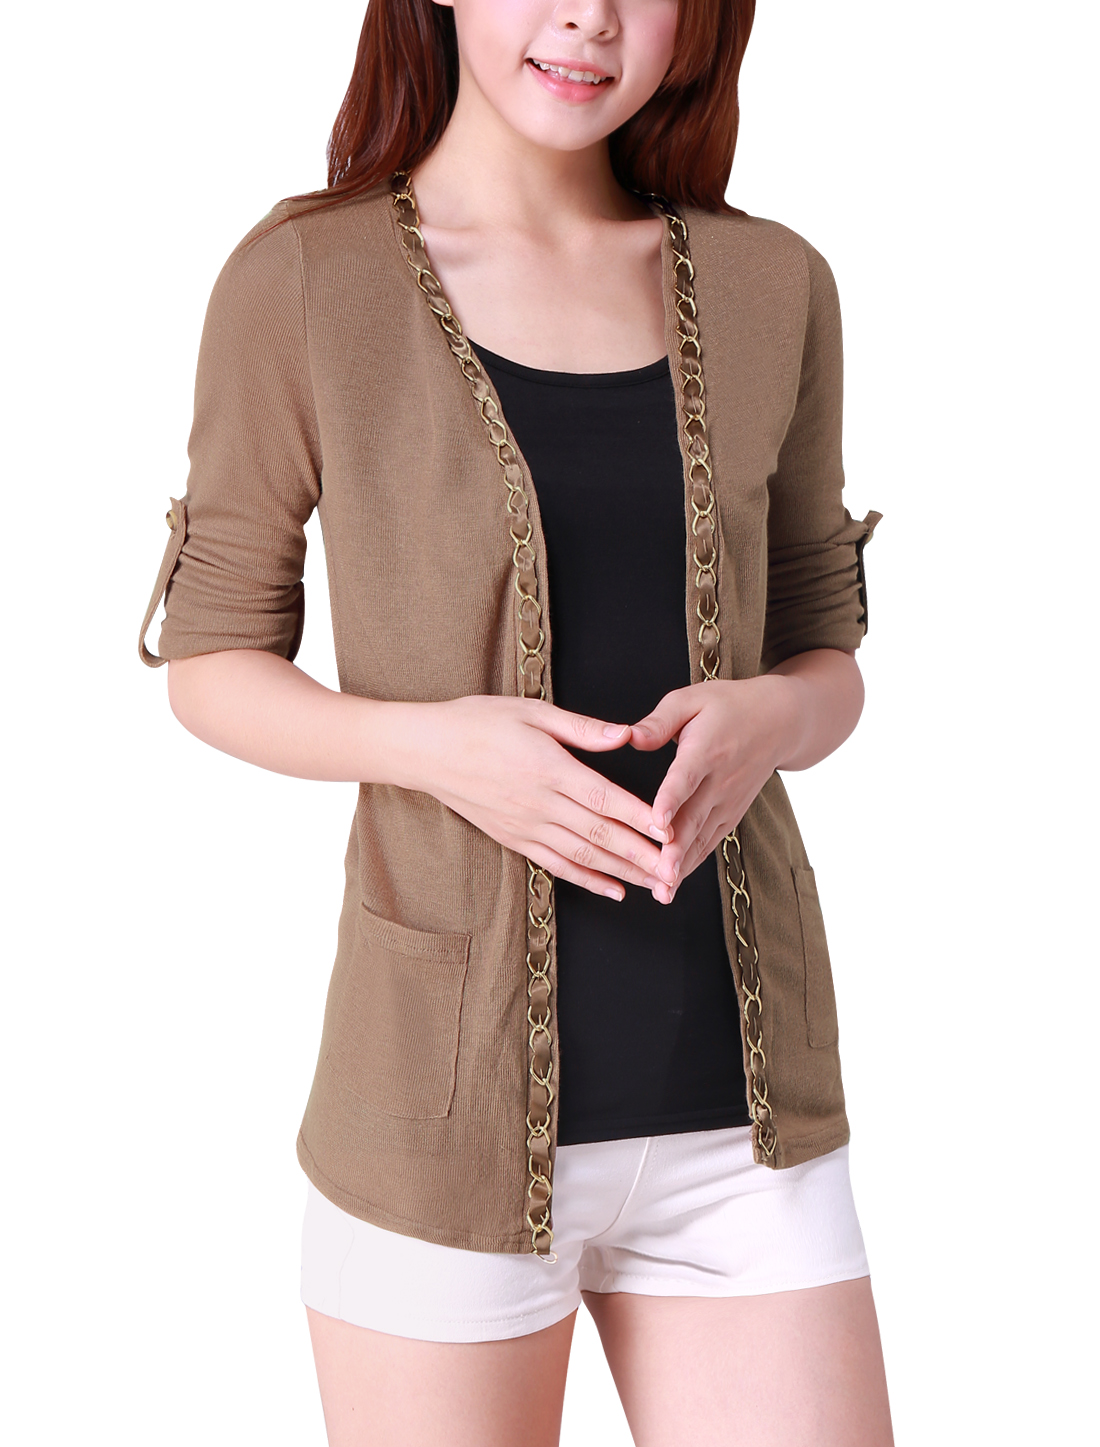 Women Chic Front Opening Metal Chain Design Coffee Color Cardigan XL